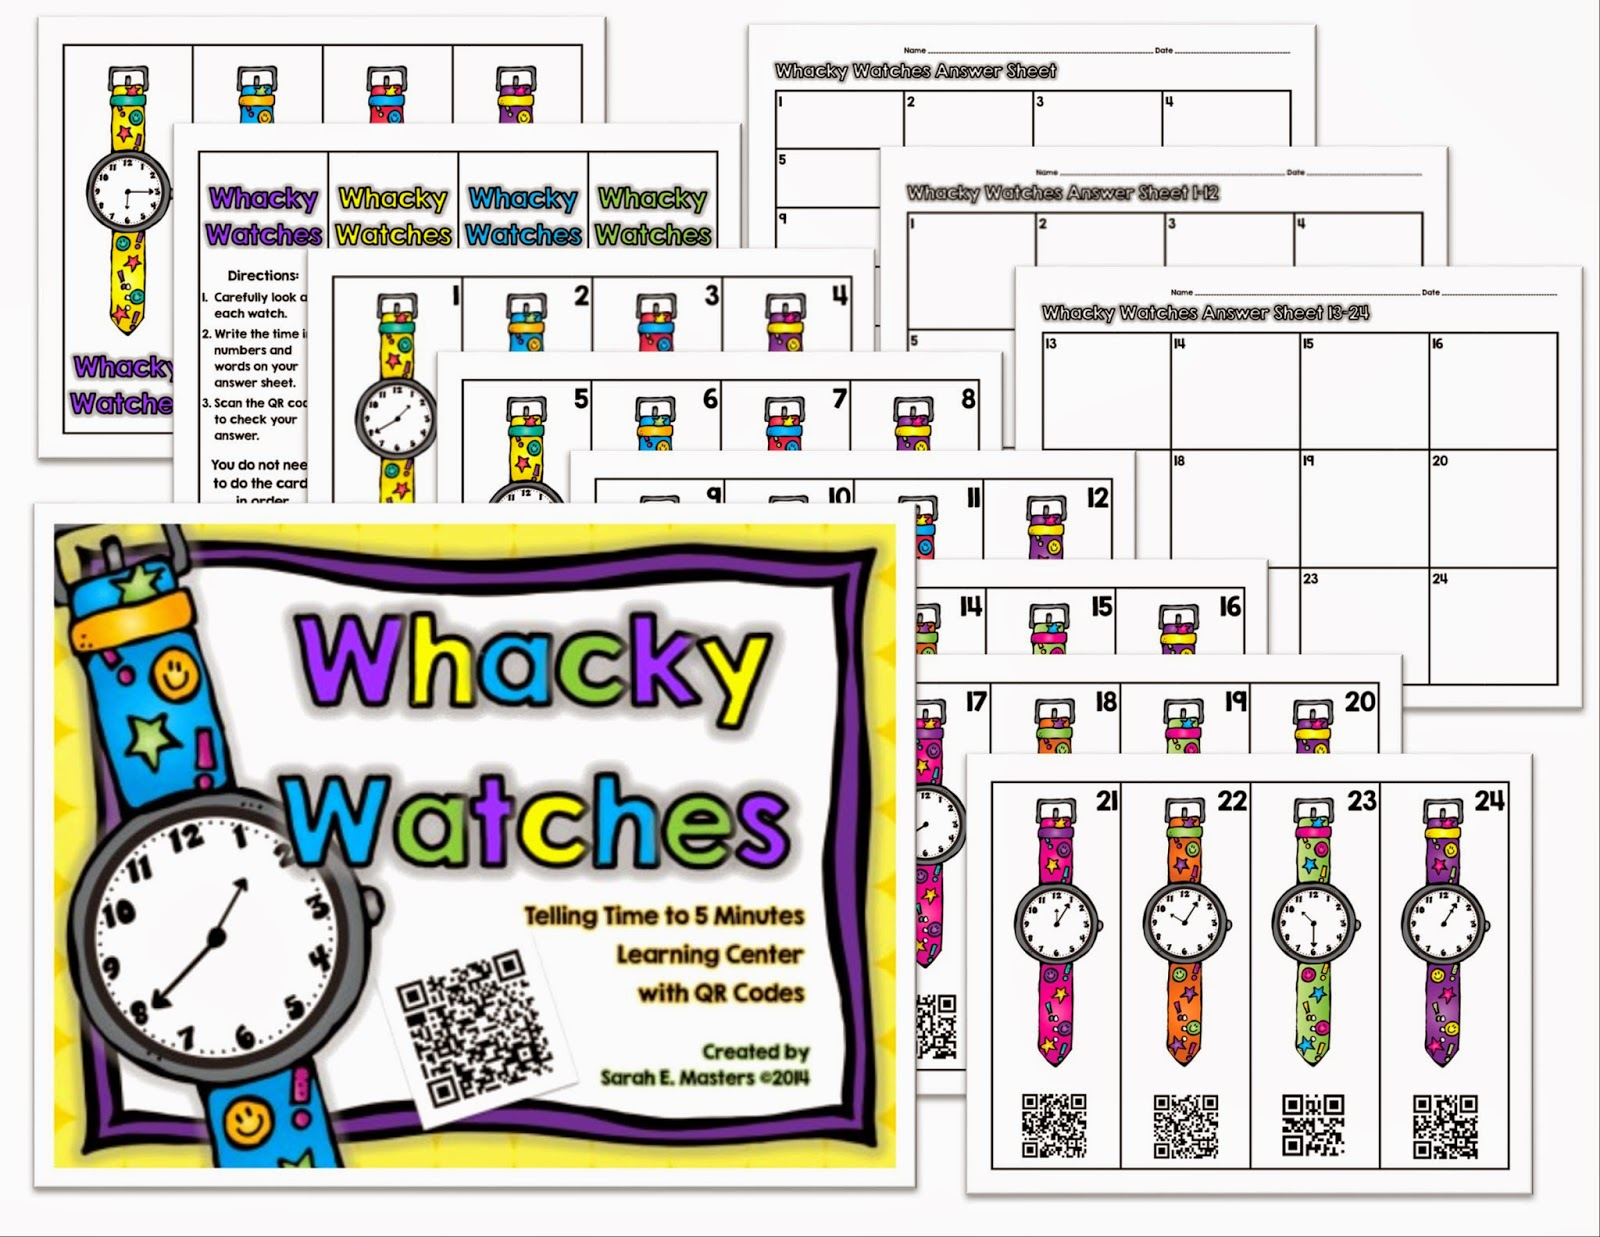 http://www.teacherspayteachers.com/Product/Whacky-Watches-Telling-Time-to-5-Minutes-Math-Center-with-QR-Codes-1177428